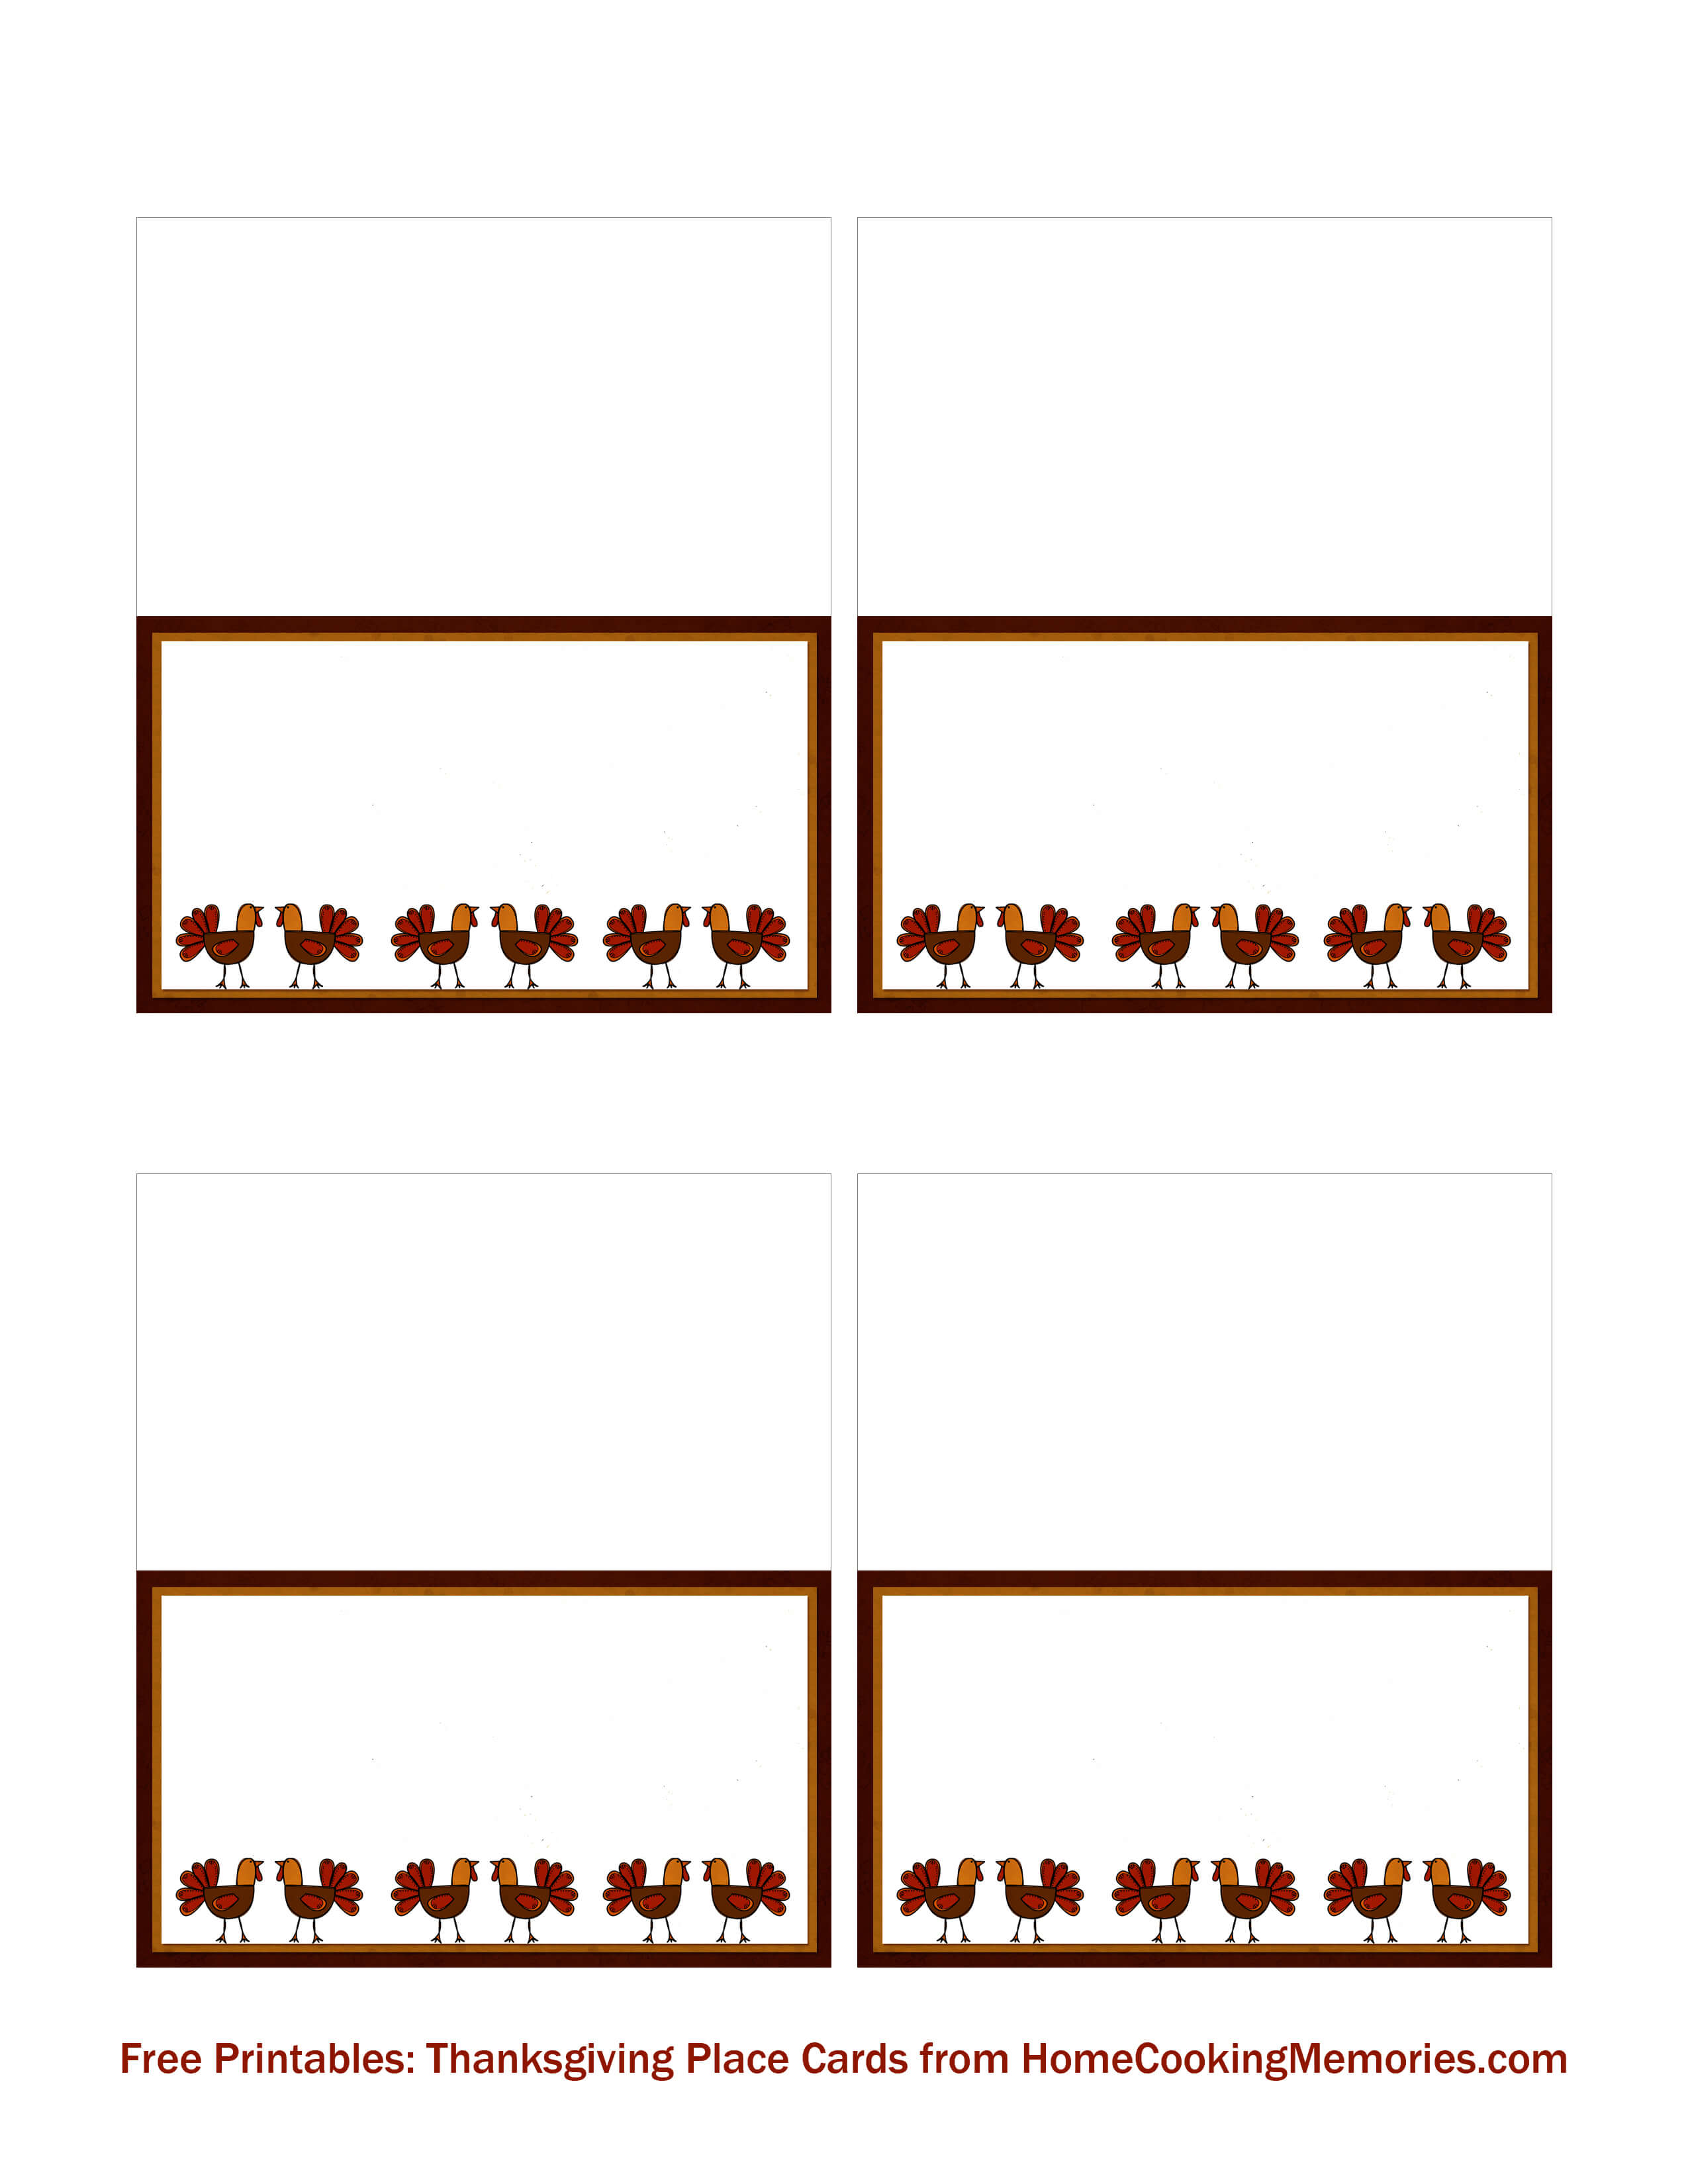 Free Printables: Thanksgiving Place Cards - Home Cooking Within Thanksgiving Place Cards Template